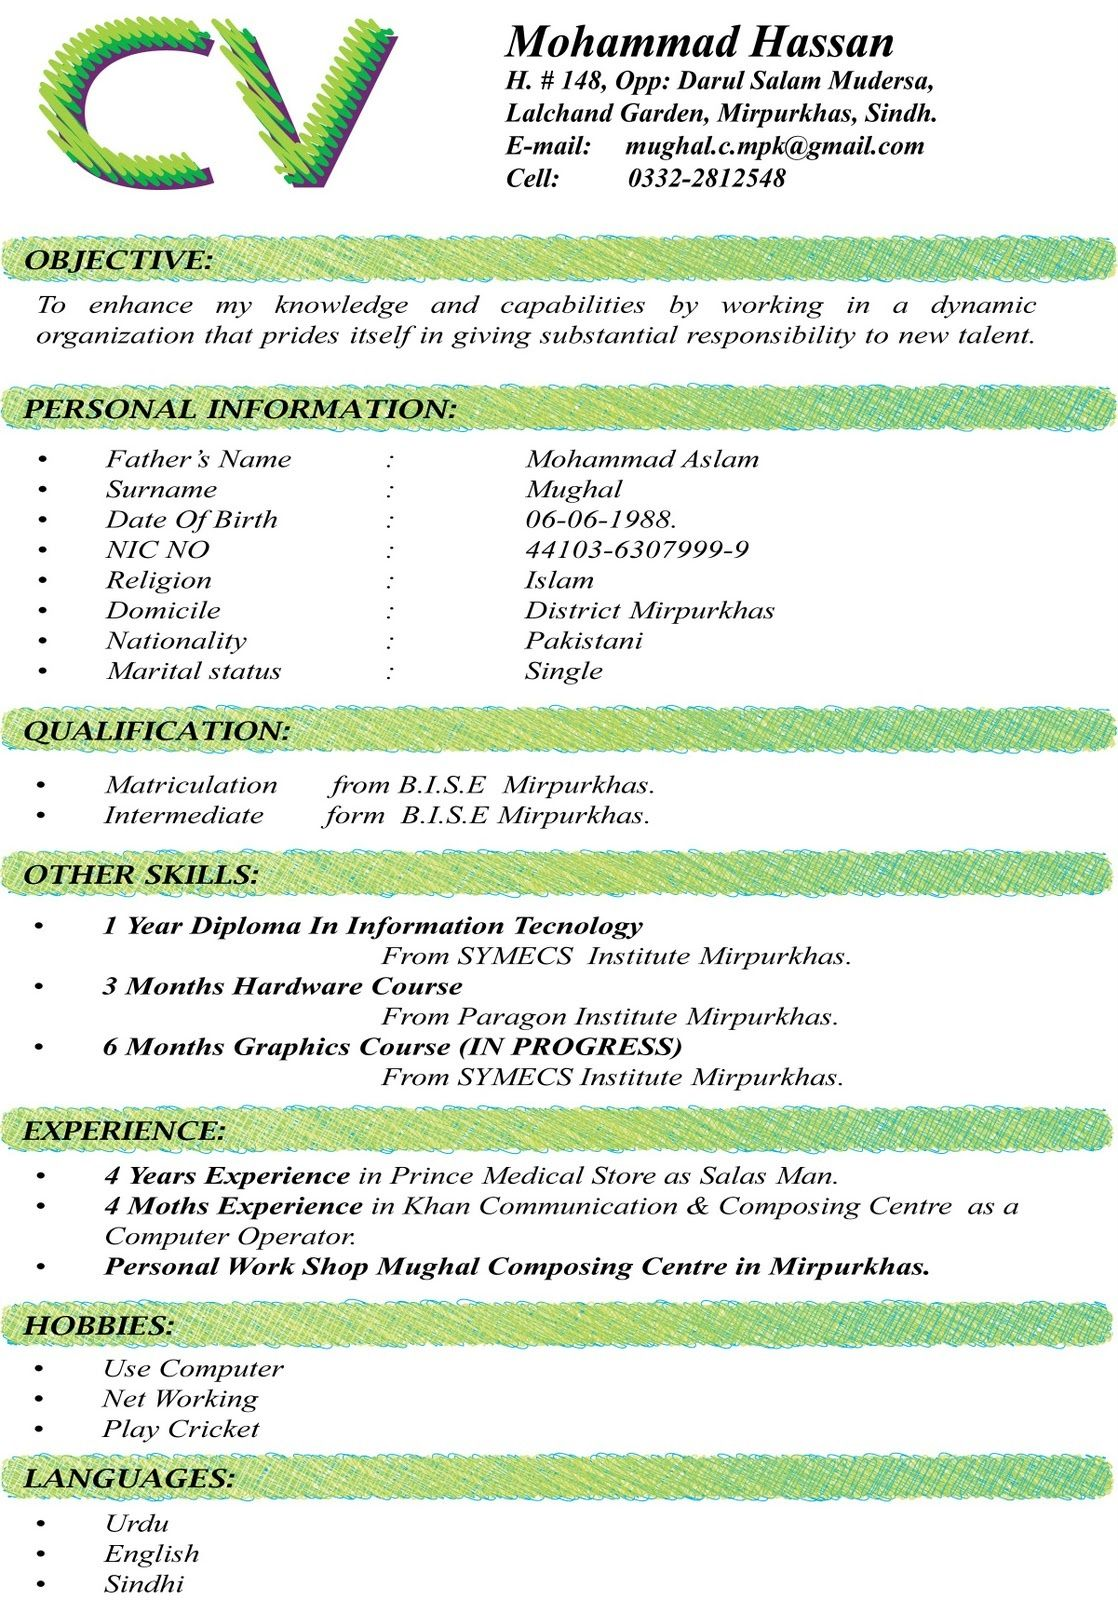 Best Cv Formats  Pakteacher   Pak Teacher Jobs Updates Alerts